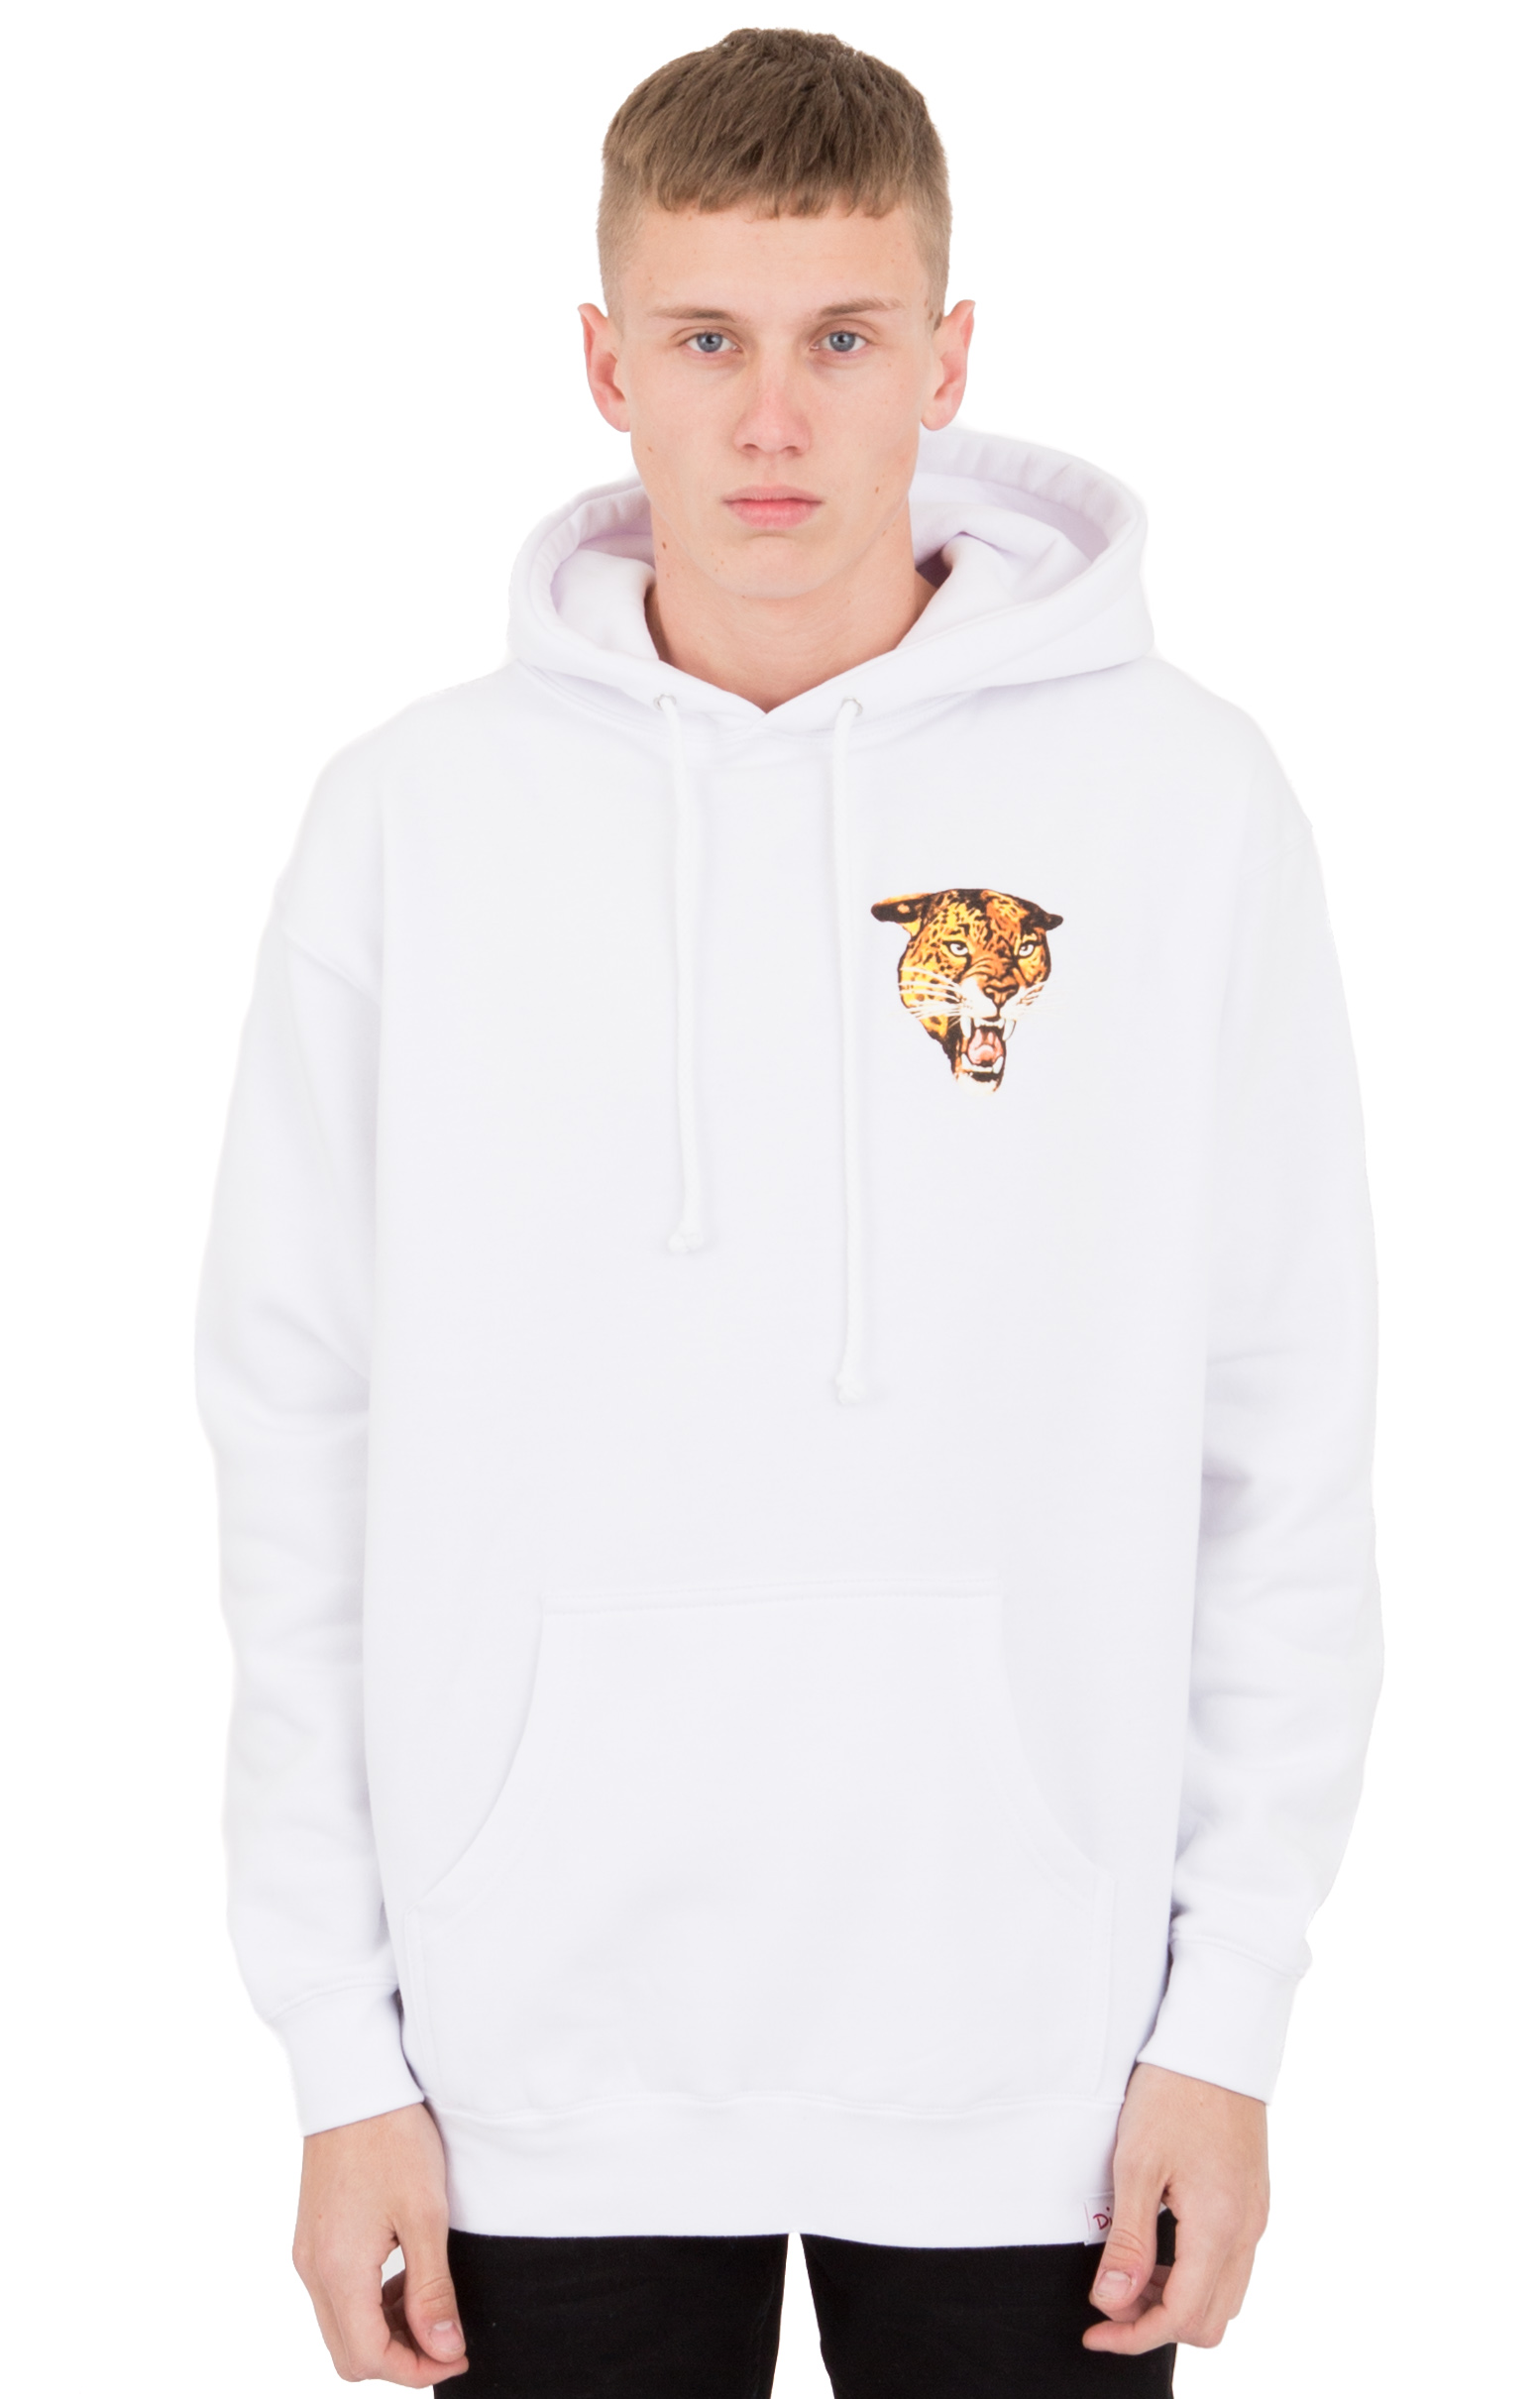 Gulf Pullover Hoodie - White 2